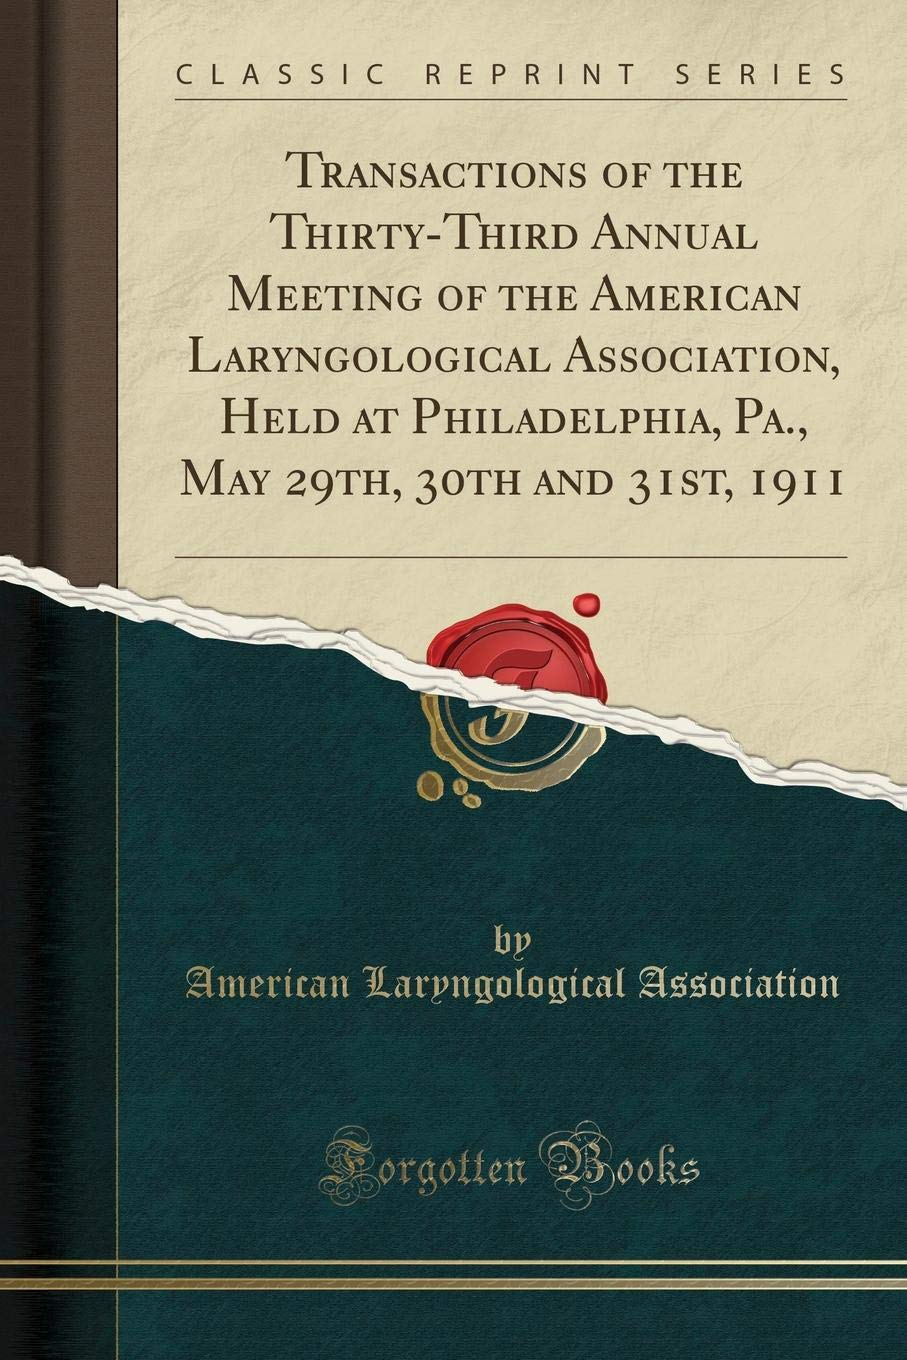 Download Transactions of the Thirty-Third Annual Meeting of the American Laryngological Association, Held at Philadelphia, Pa., May 29th, 30th and 31st, 1911 (Classic Reprint) pdf epub